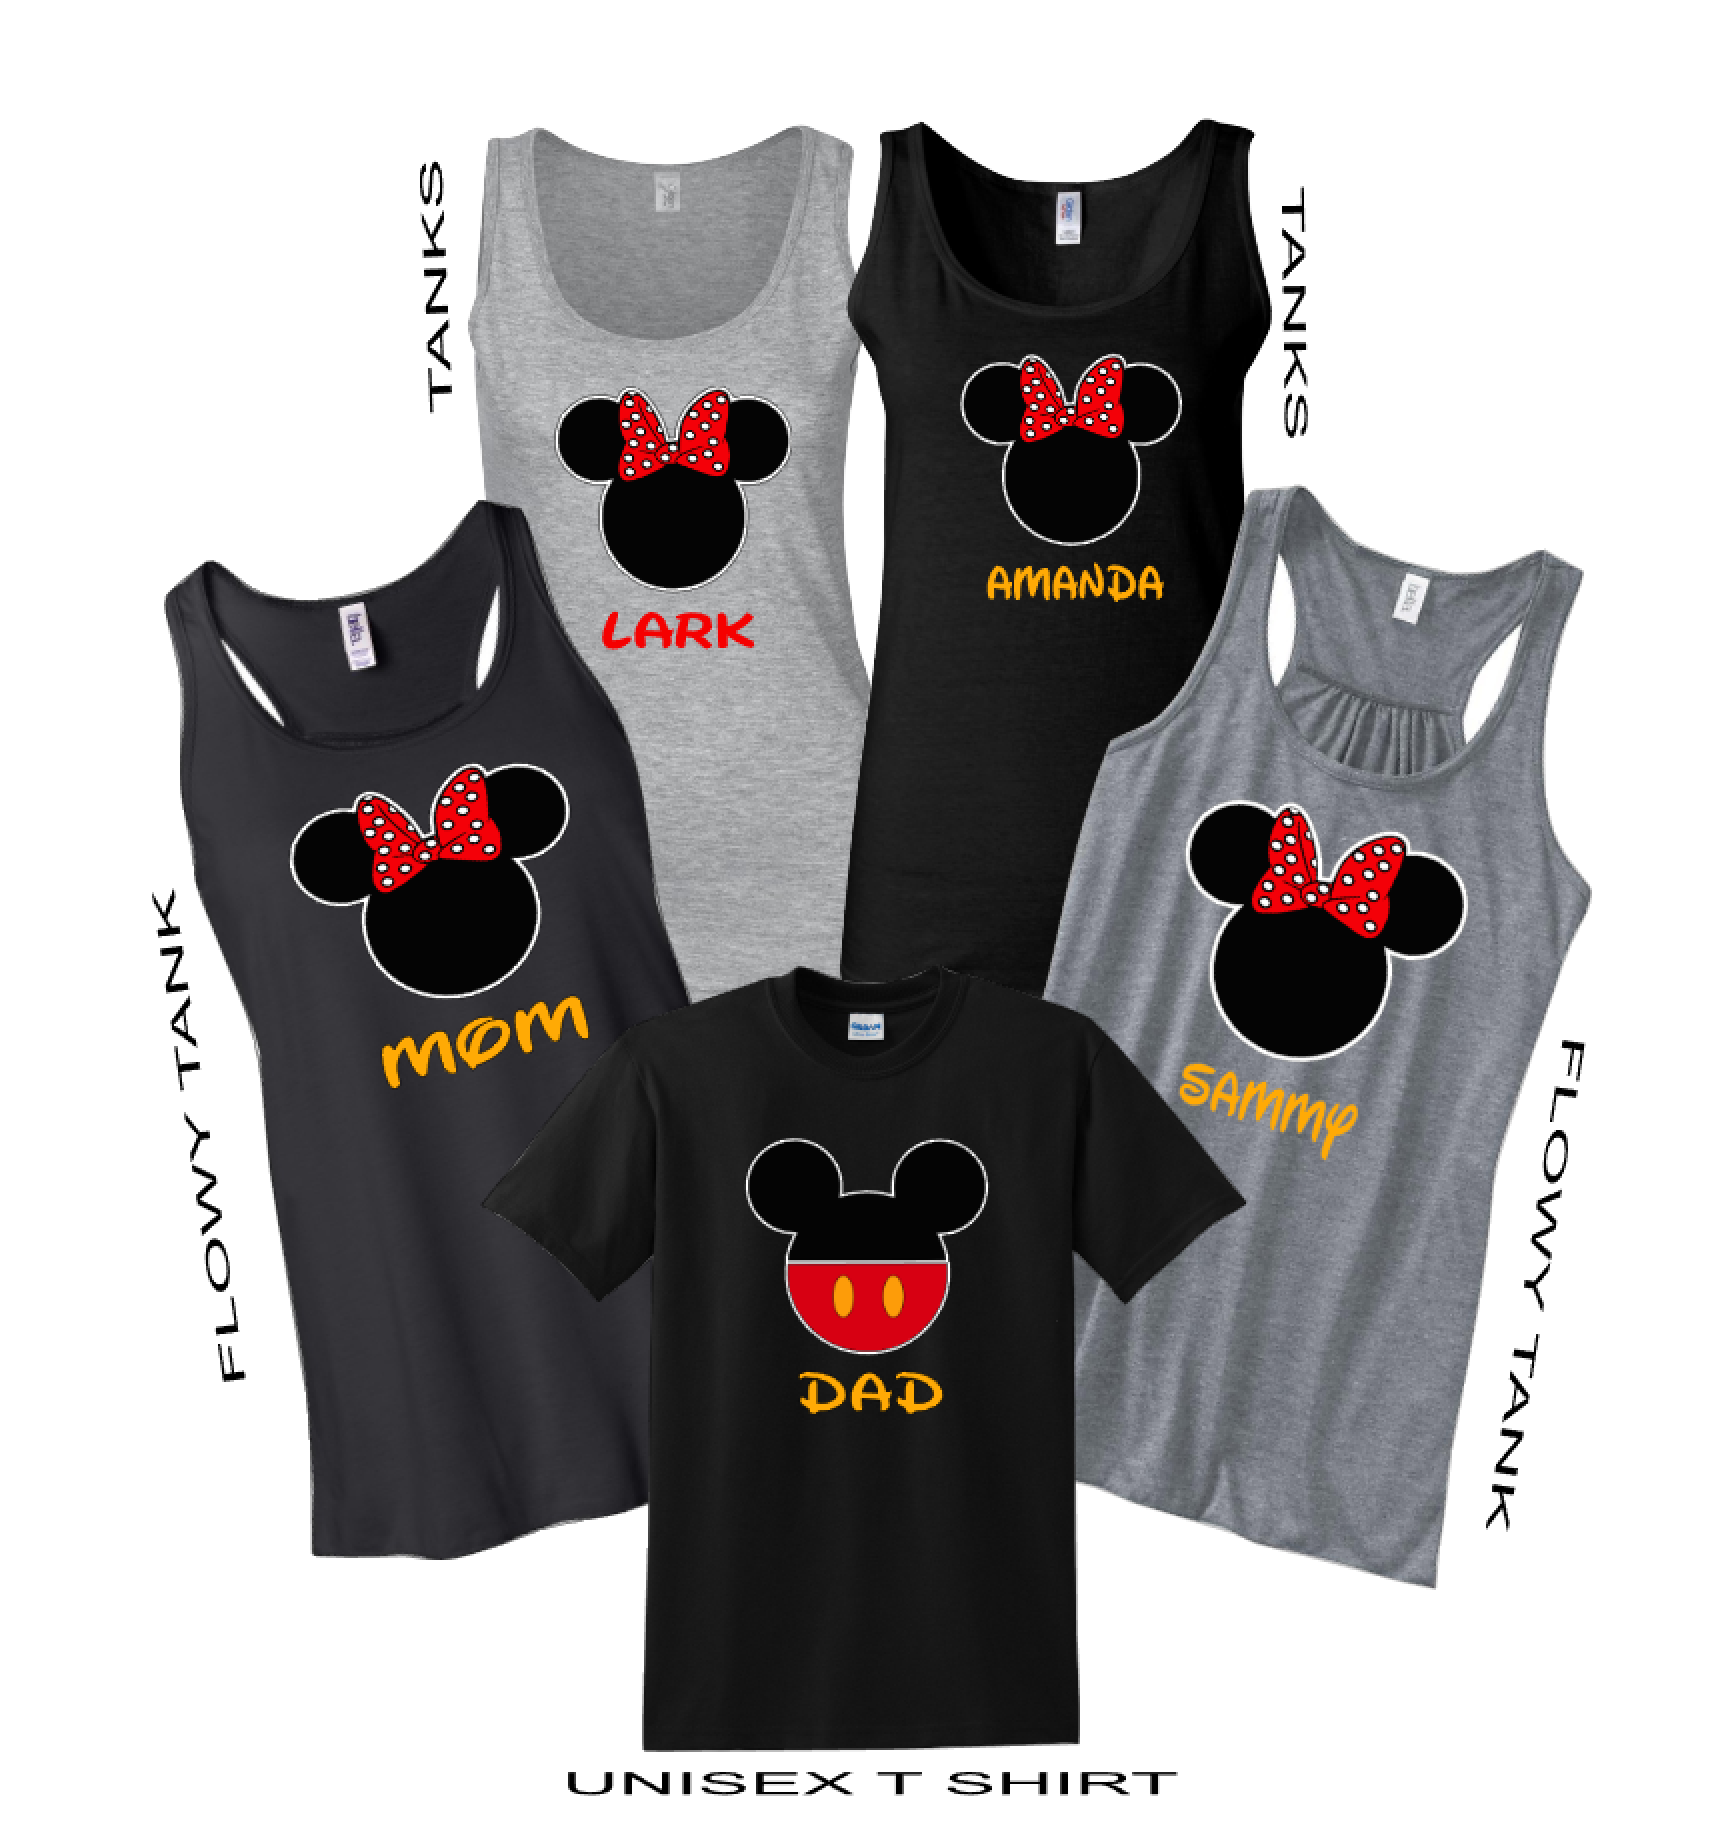 6909f35cf Disney Family Minnie Mouse Flowy Tops and Tank Top Black/Gray | The  Official Site of Logan To Layla